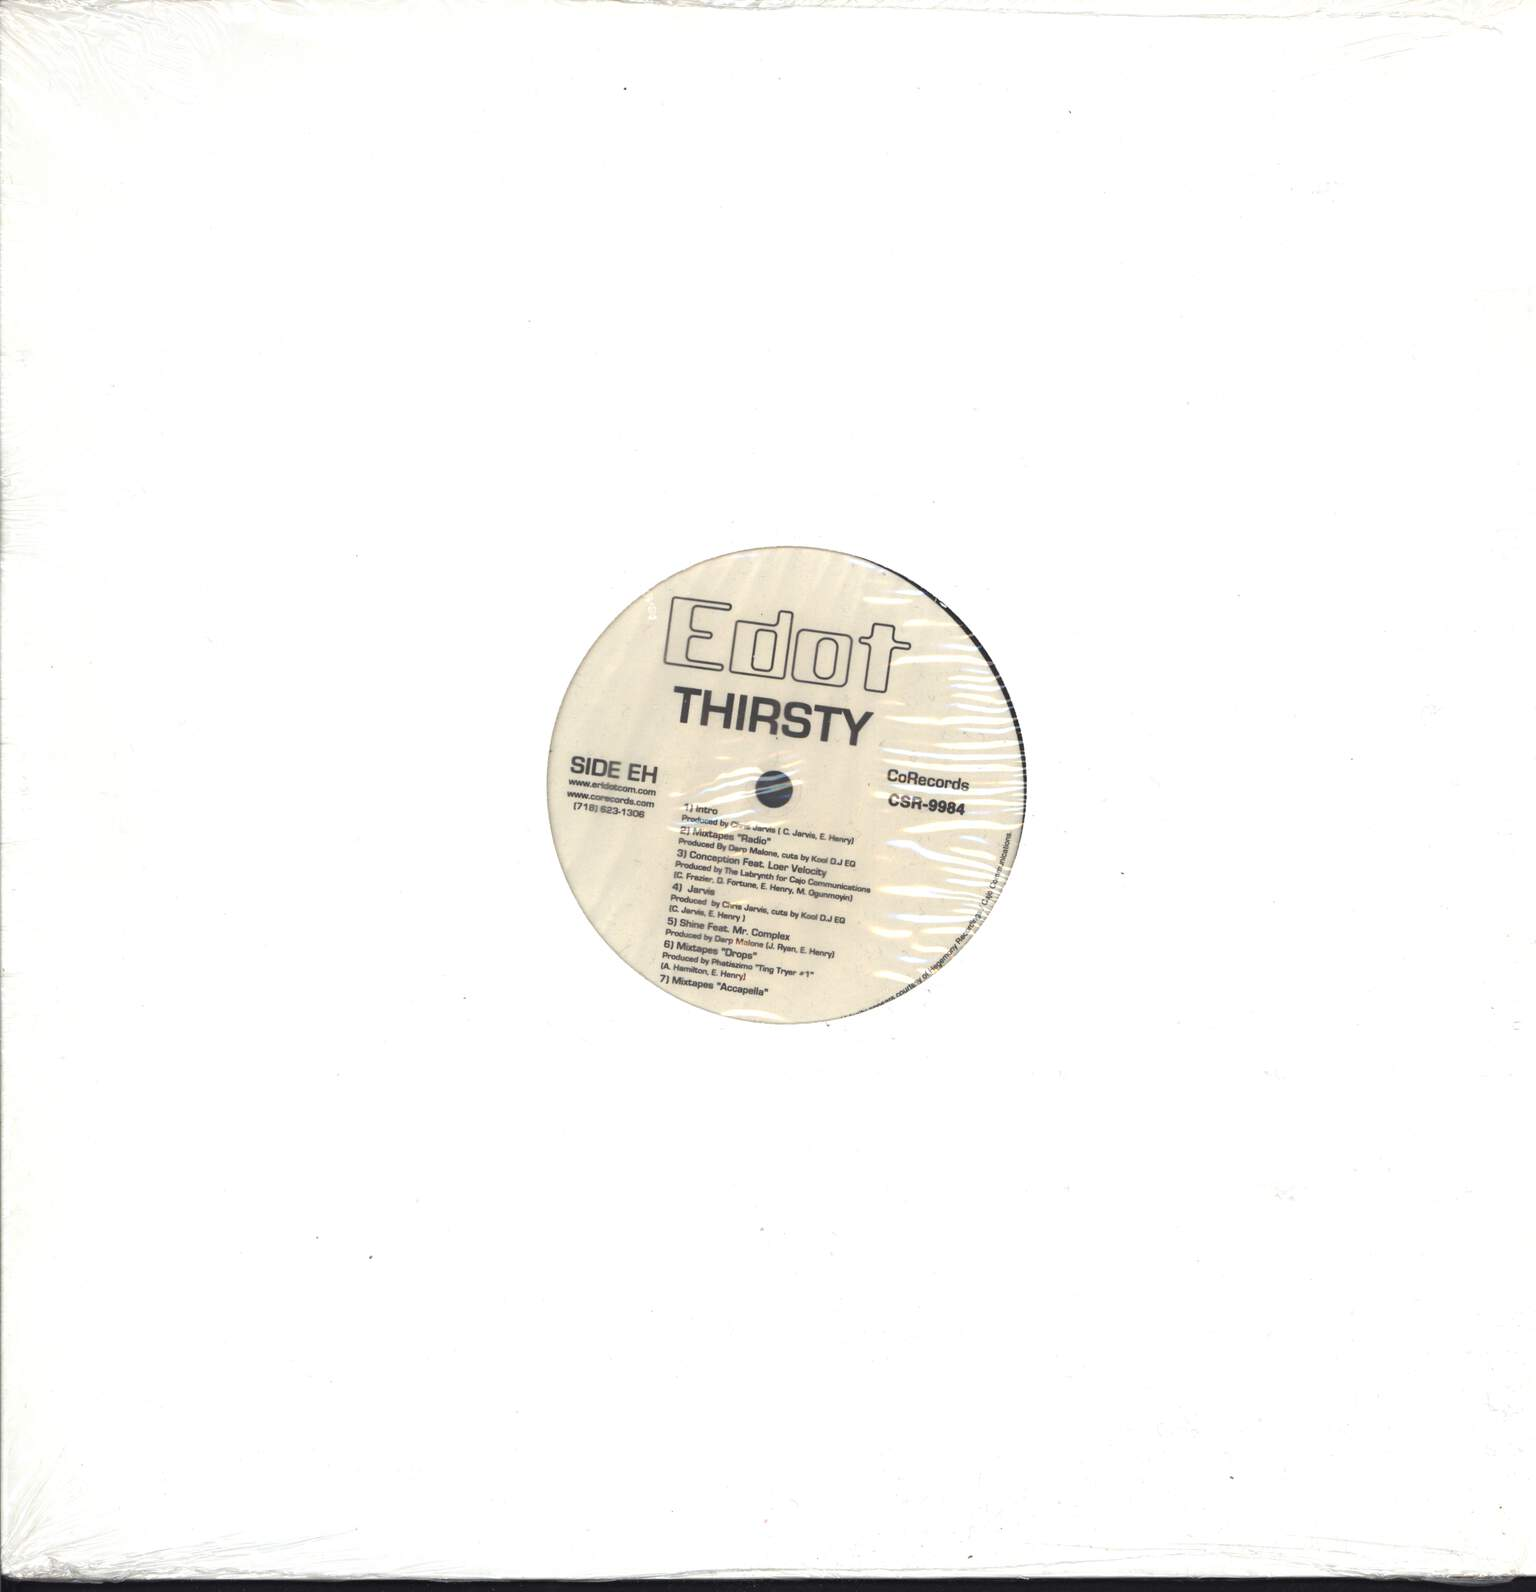 "E-Dot: Thirsty, 12"" Maxi Single (Vinyl)"